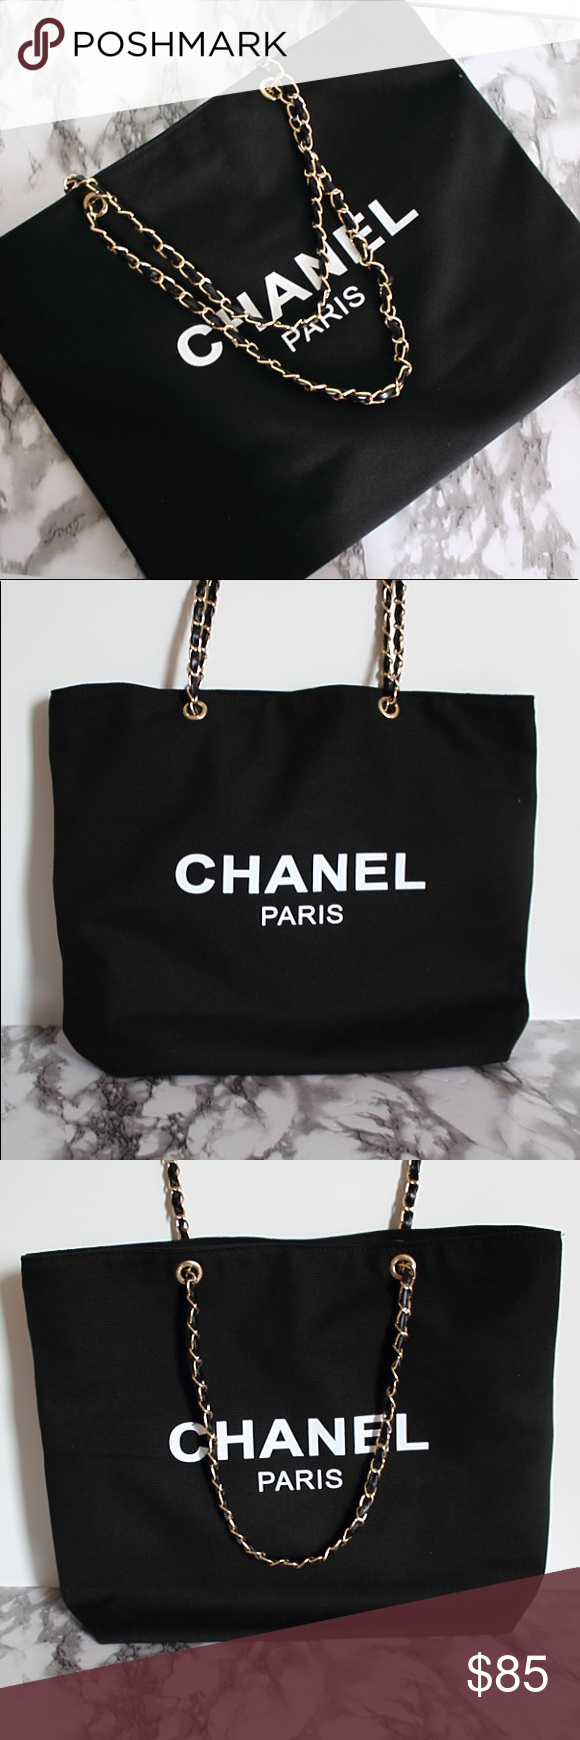 f1df2b1936c4 Auth Chanel Vip Gift Canvas Leather Chain Tote Bag Authentic Chanel Paris  beauty vip gift